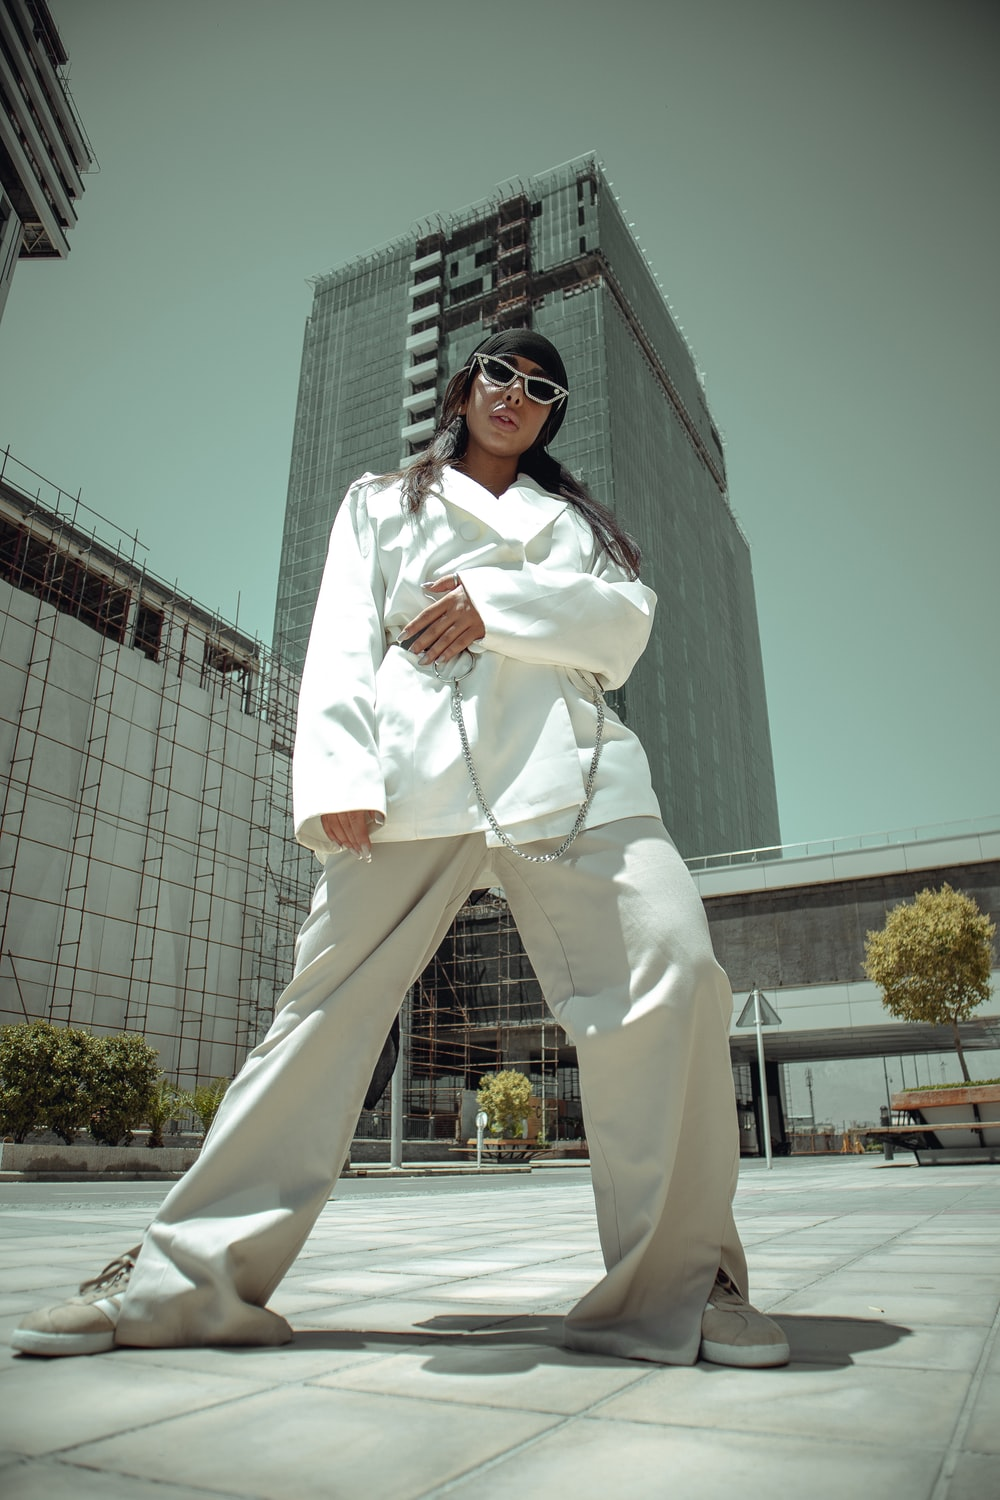 woman in white long sleeve shirt and white pants standing near white building during daytime